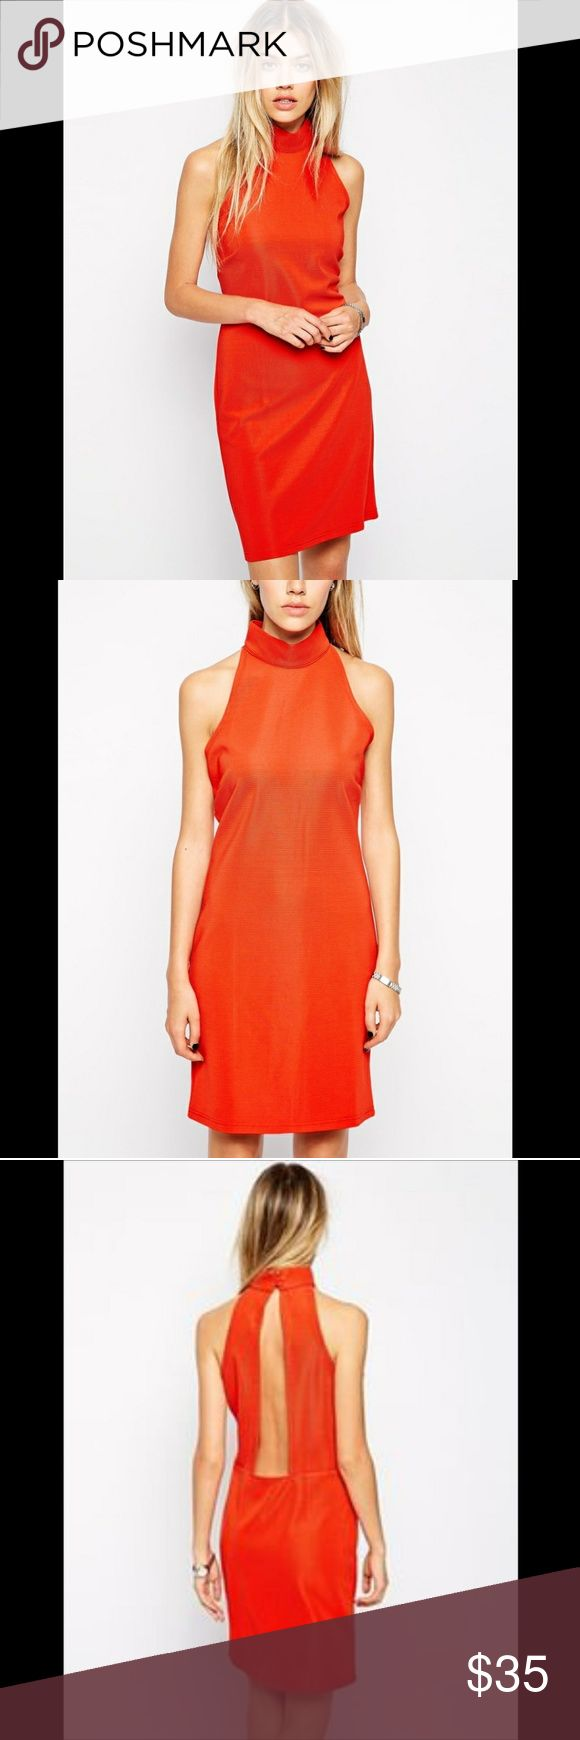 ASOS UK Glamorous P High Neck Ribbed Bodycon Dress ASOS UK Glamorous Petite High-Neck Ribbed Bodycon Dress. SO HOT! SOLD OUT EVERYWHERE! A MAJOR HTF! SO ROMANTIC AND FEMININE CHIC! SMOKE FREE! LABELED ORANGE BUT ITS A RED ORANGE. A BEAUTIFUL COLOR FOR THIS SEASON!!! ASOS Petite Dresses